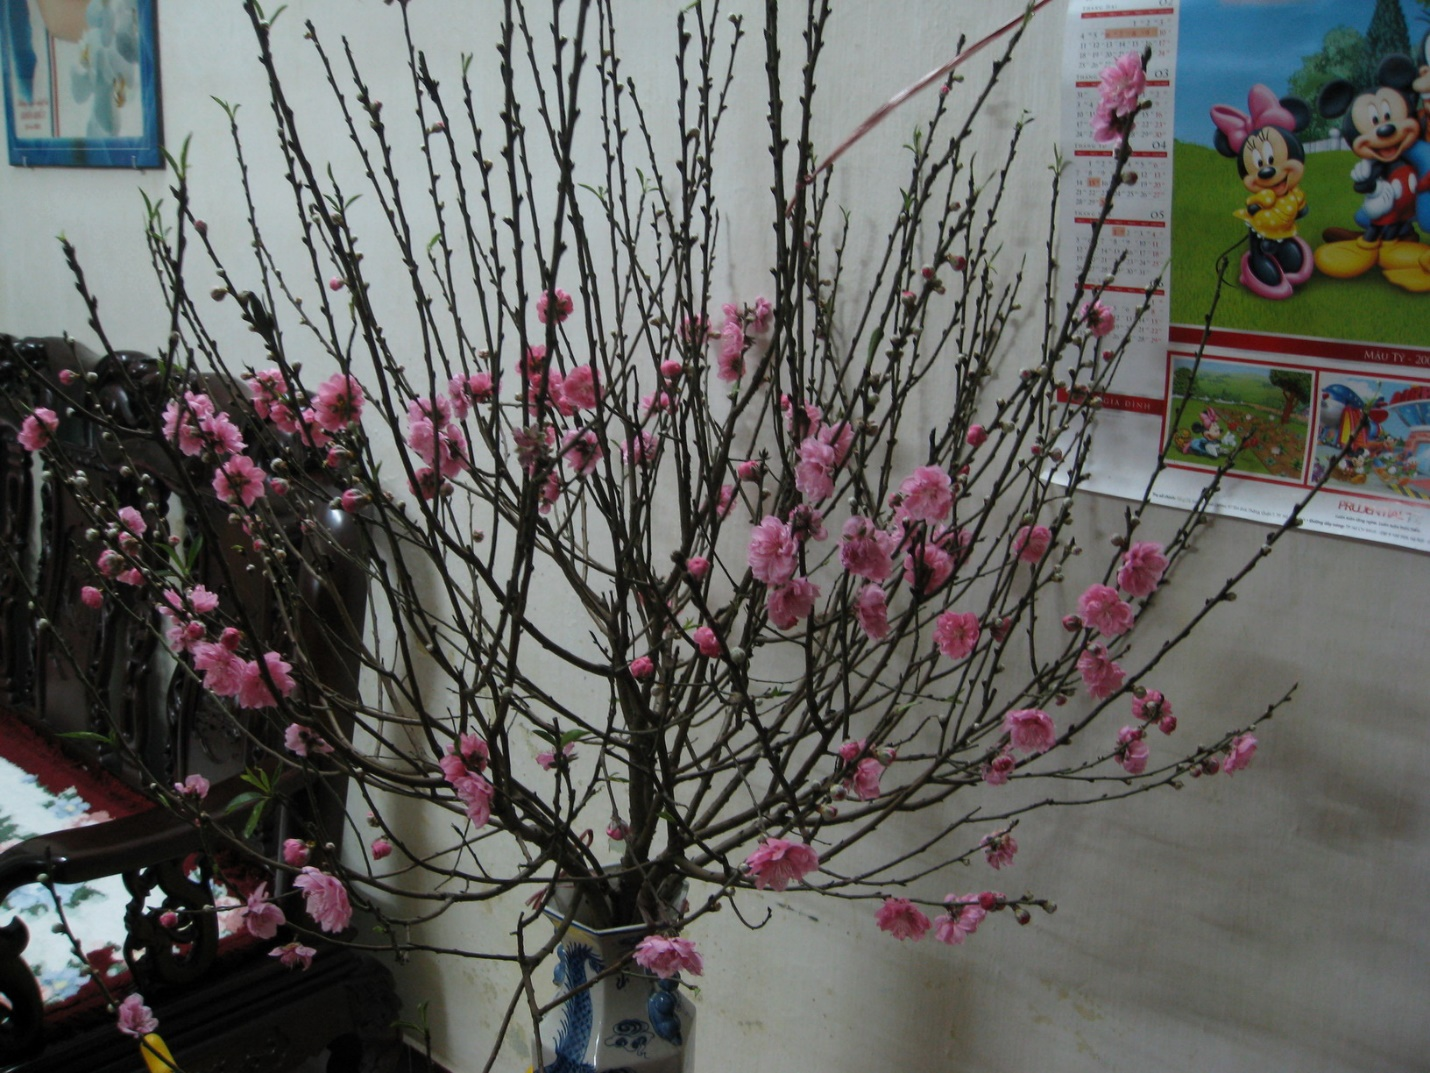 Peach blossom is put in the living room at Tet holiday